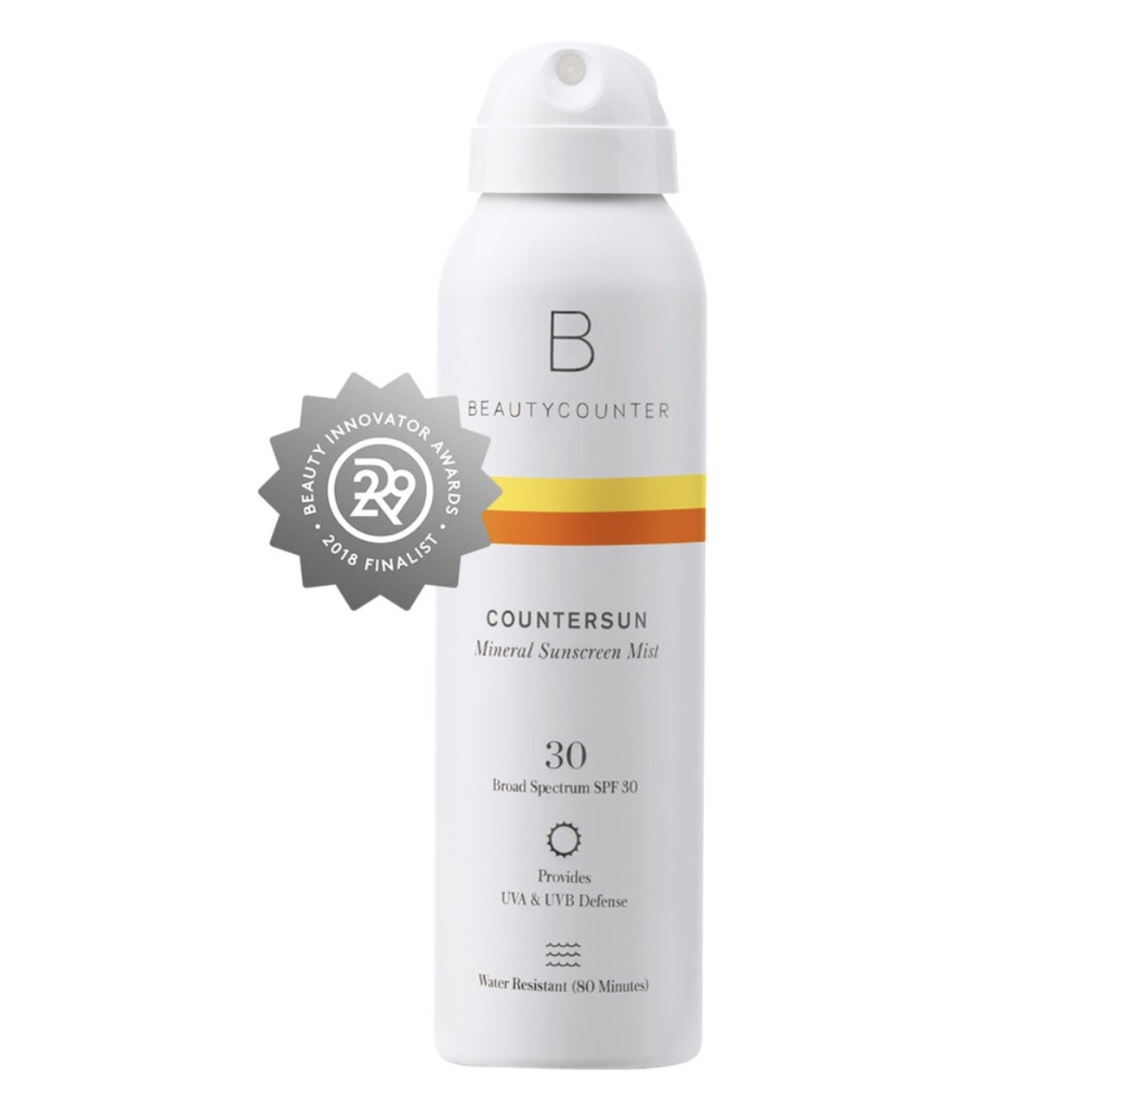 BEAUTYCOUNTERCountersun Mineral Sunscreen Mist SPF 30 - This best-selling, award-winning, water-resistant, never streaky mineral sunscreen mist also comes in a travel size and TINTED version.